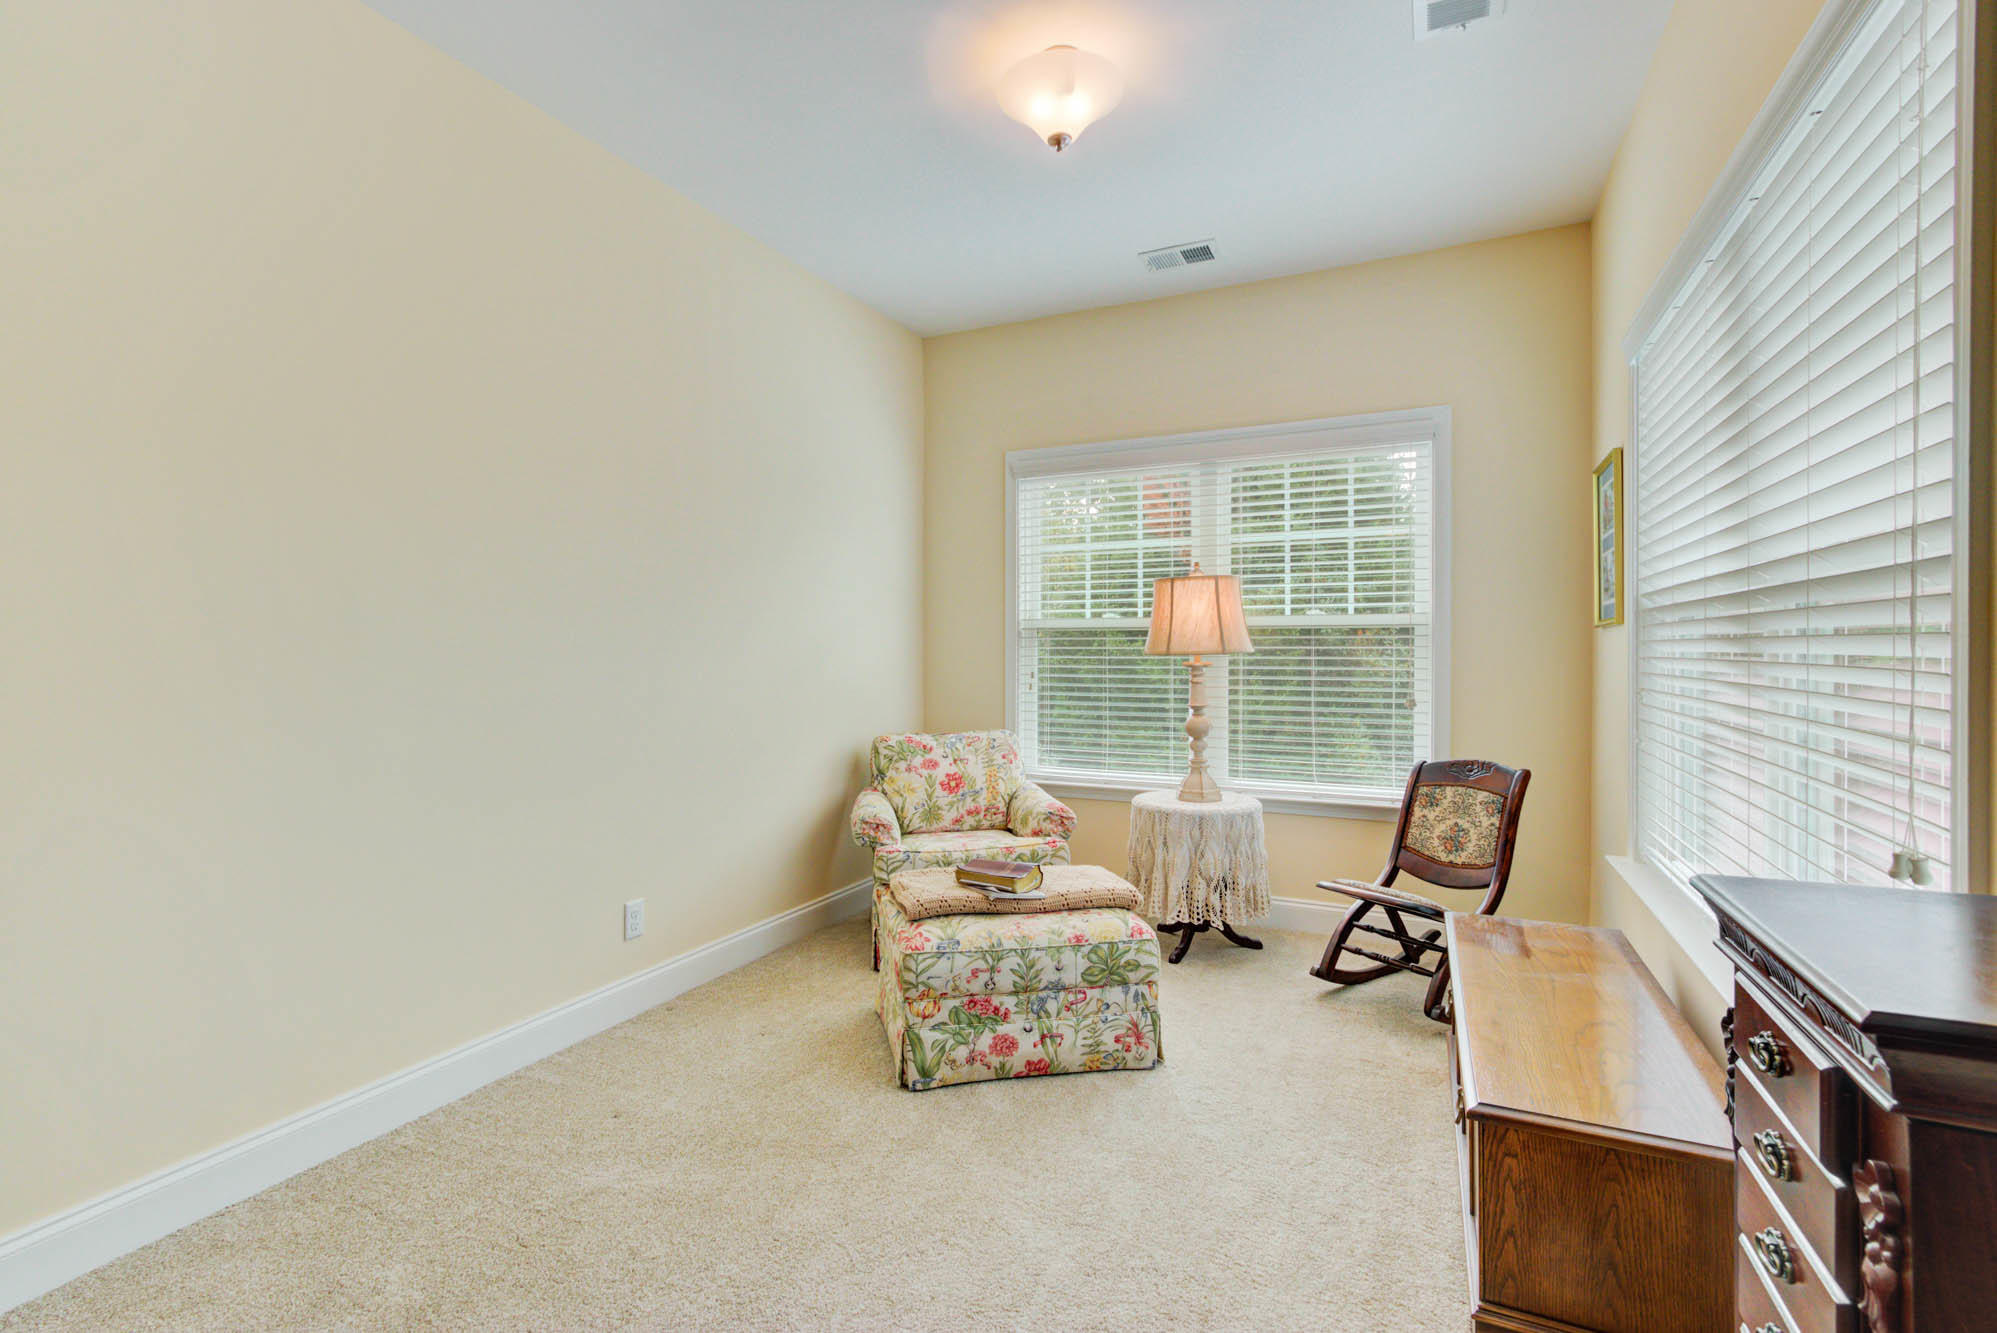 Dunes West Homes For Sale - 2499 Kings Gate, Mount Pleasant, SC - 6